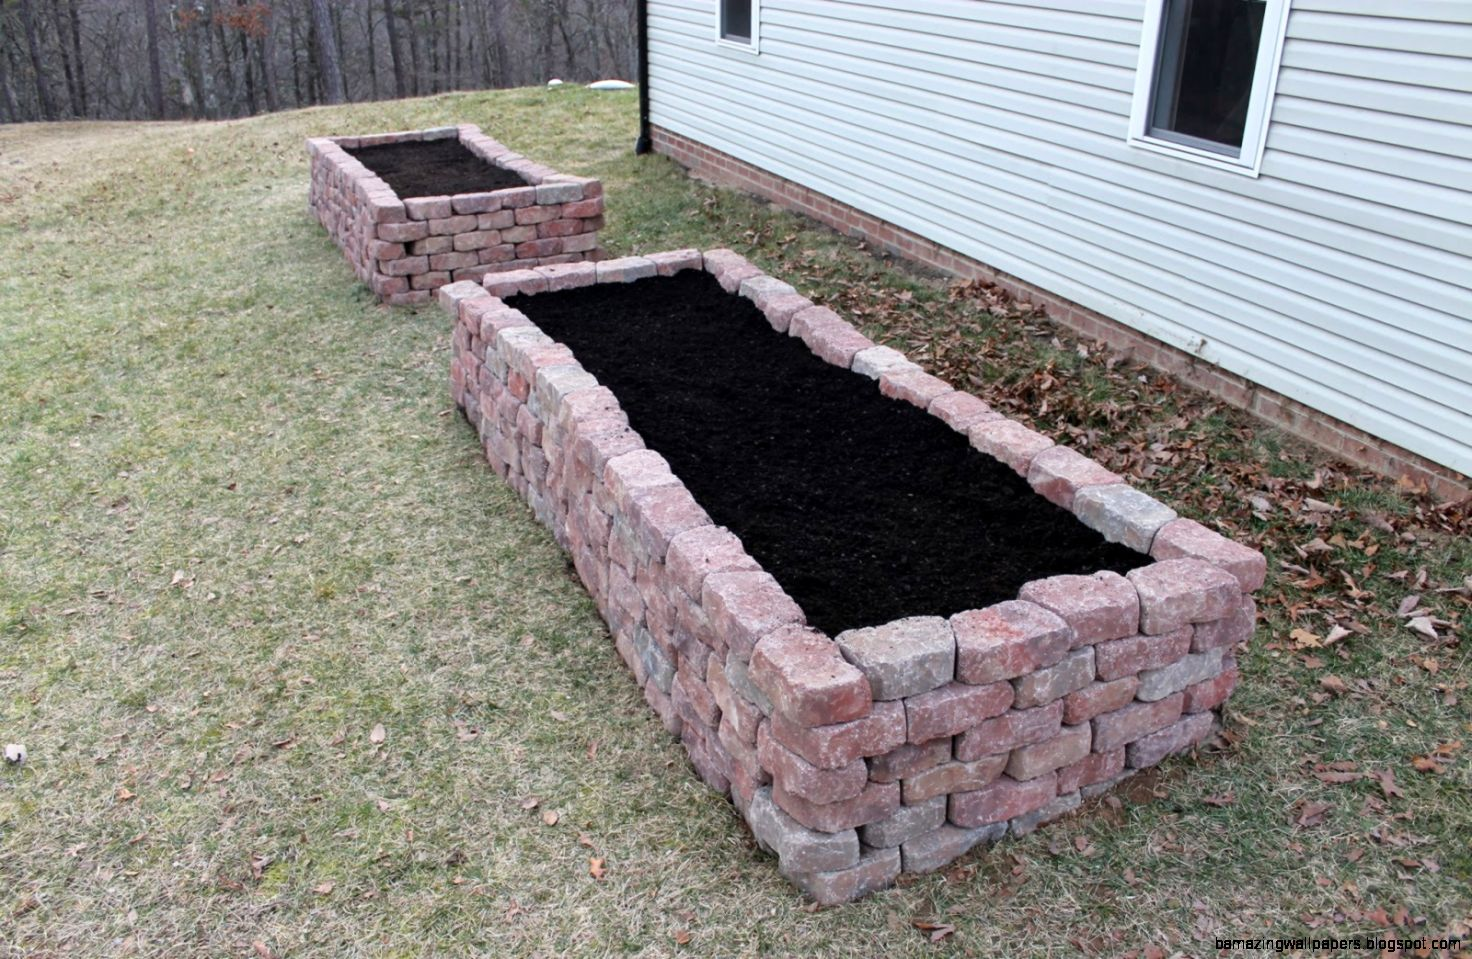 Paint Speckled Pawprints Raised Flagstone Vegetable Garden Beds